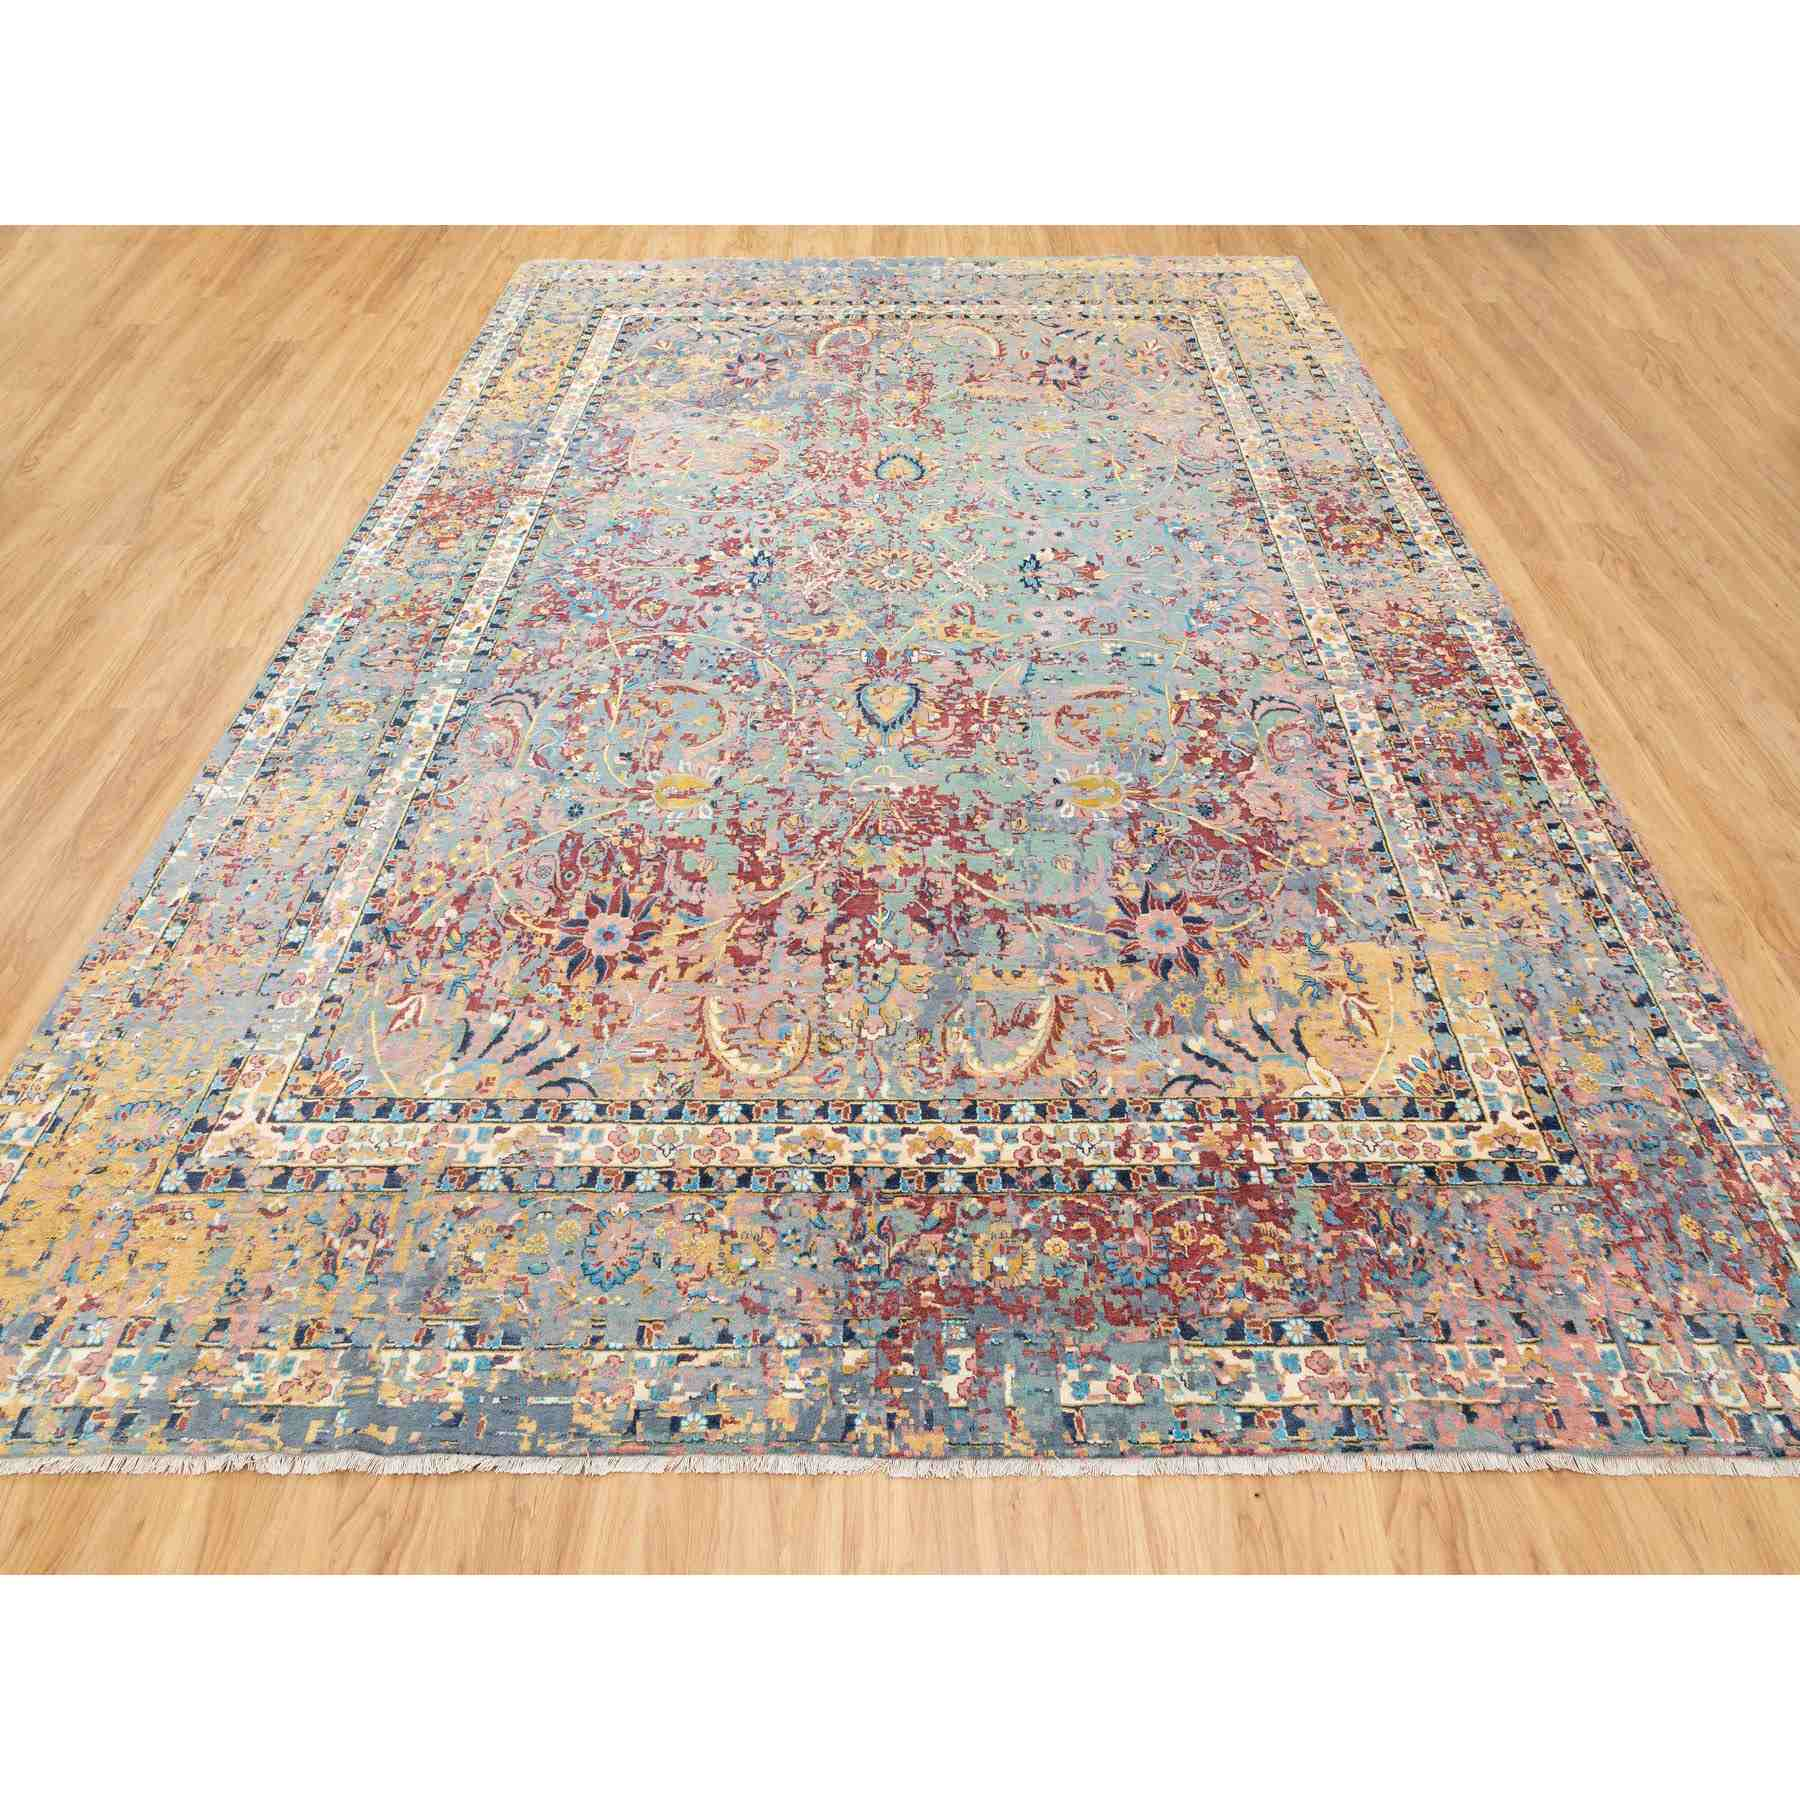 Wool-and-Silk-Hand-Knotted-Rug-292145